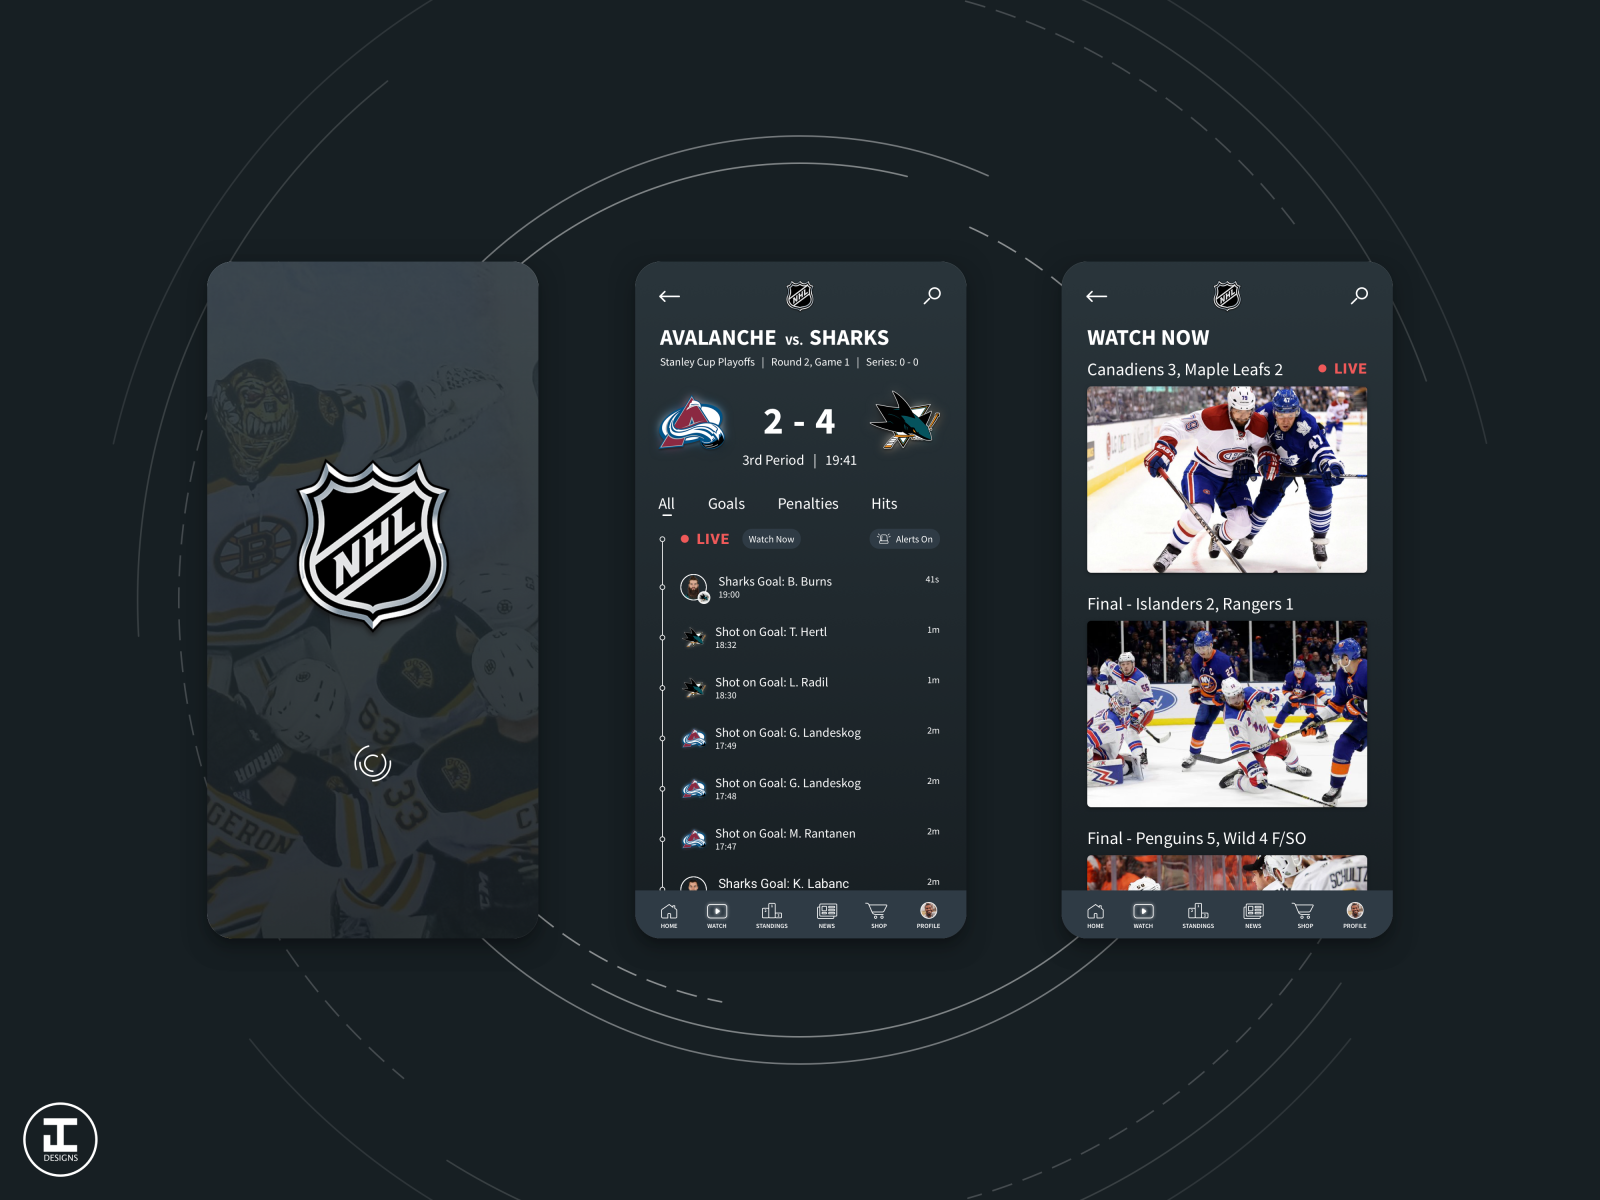 Nhl App Redesign Concept Updated By Jacob Caccamo On Dribbble